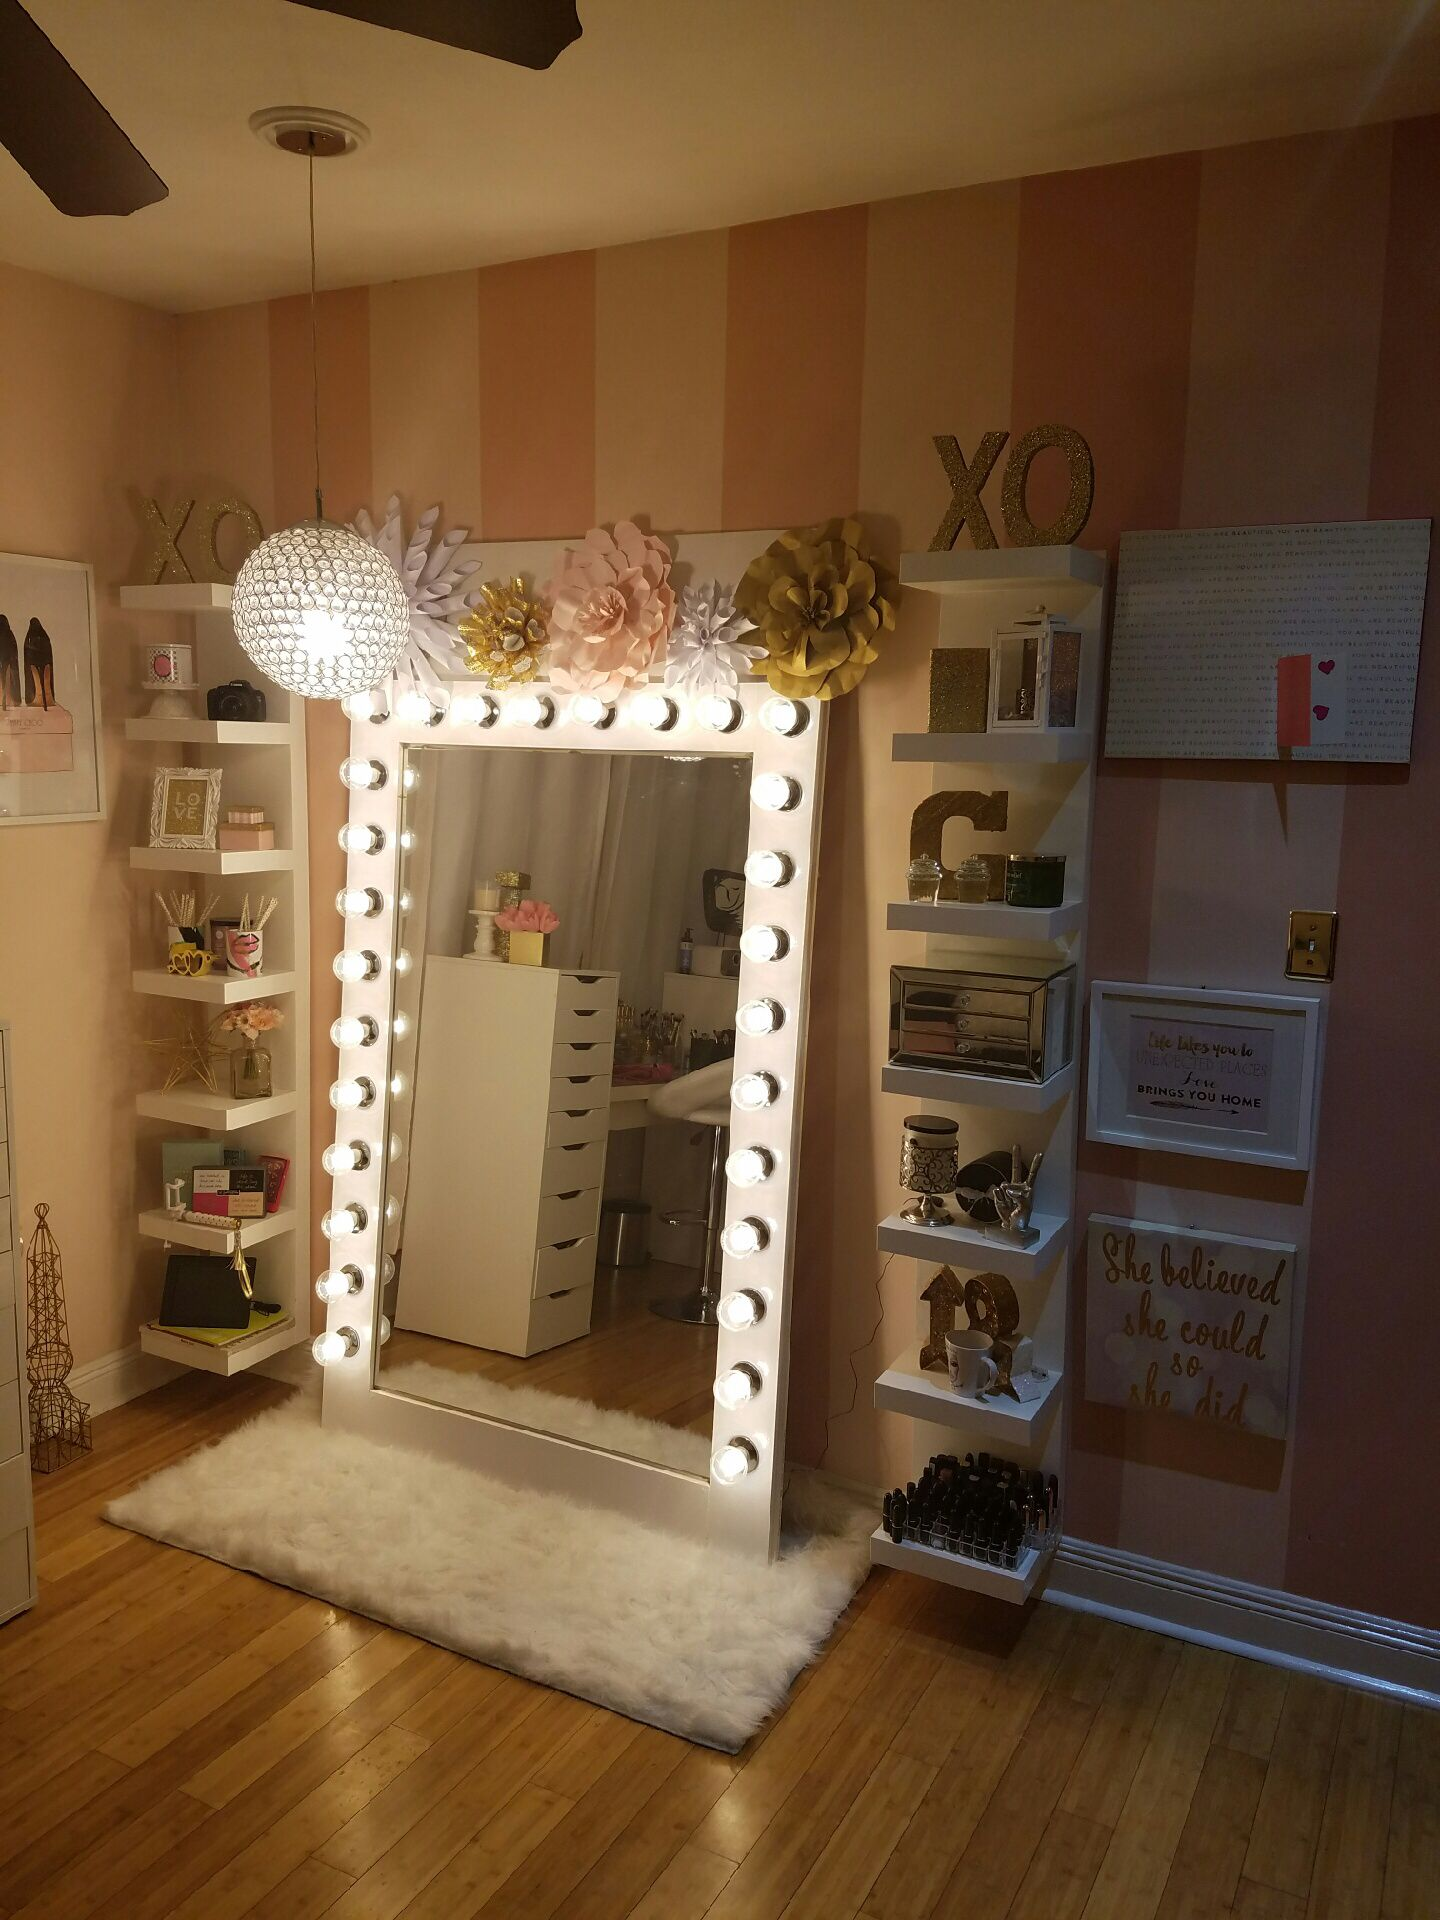 17 DIY Vanity Mirror Ideas to Make Your Room More Beautiful | DIY ...